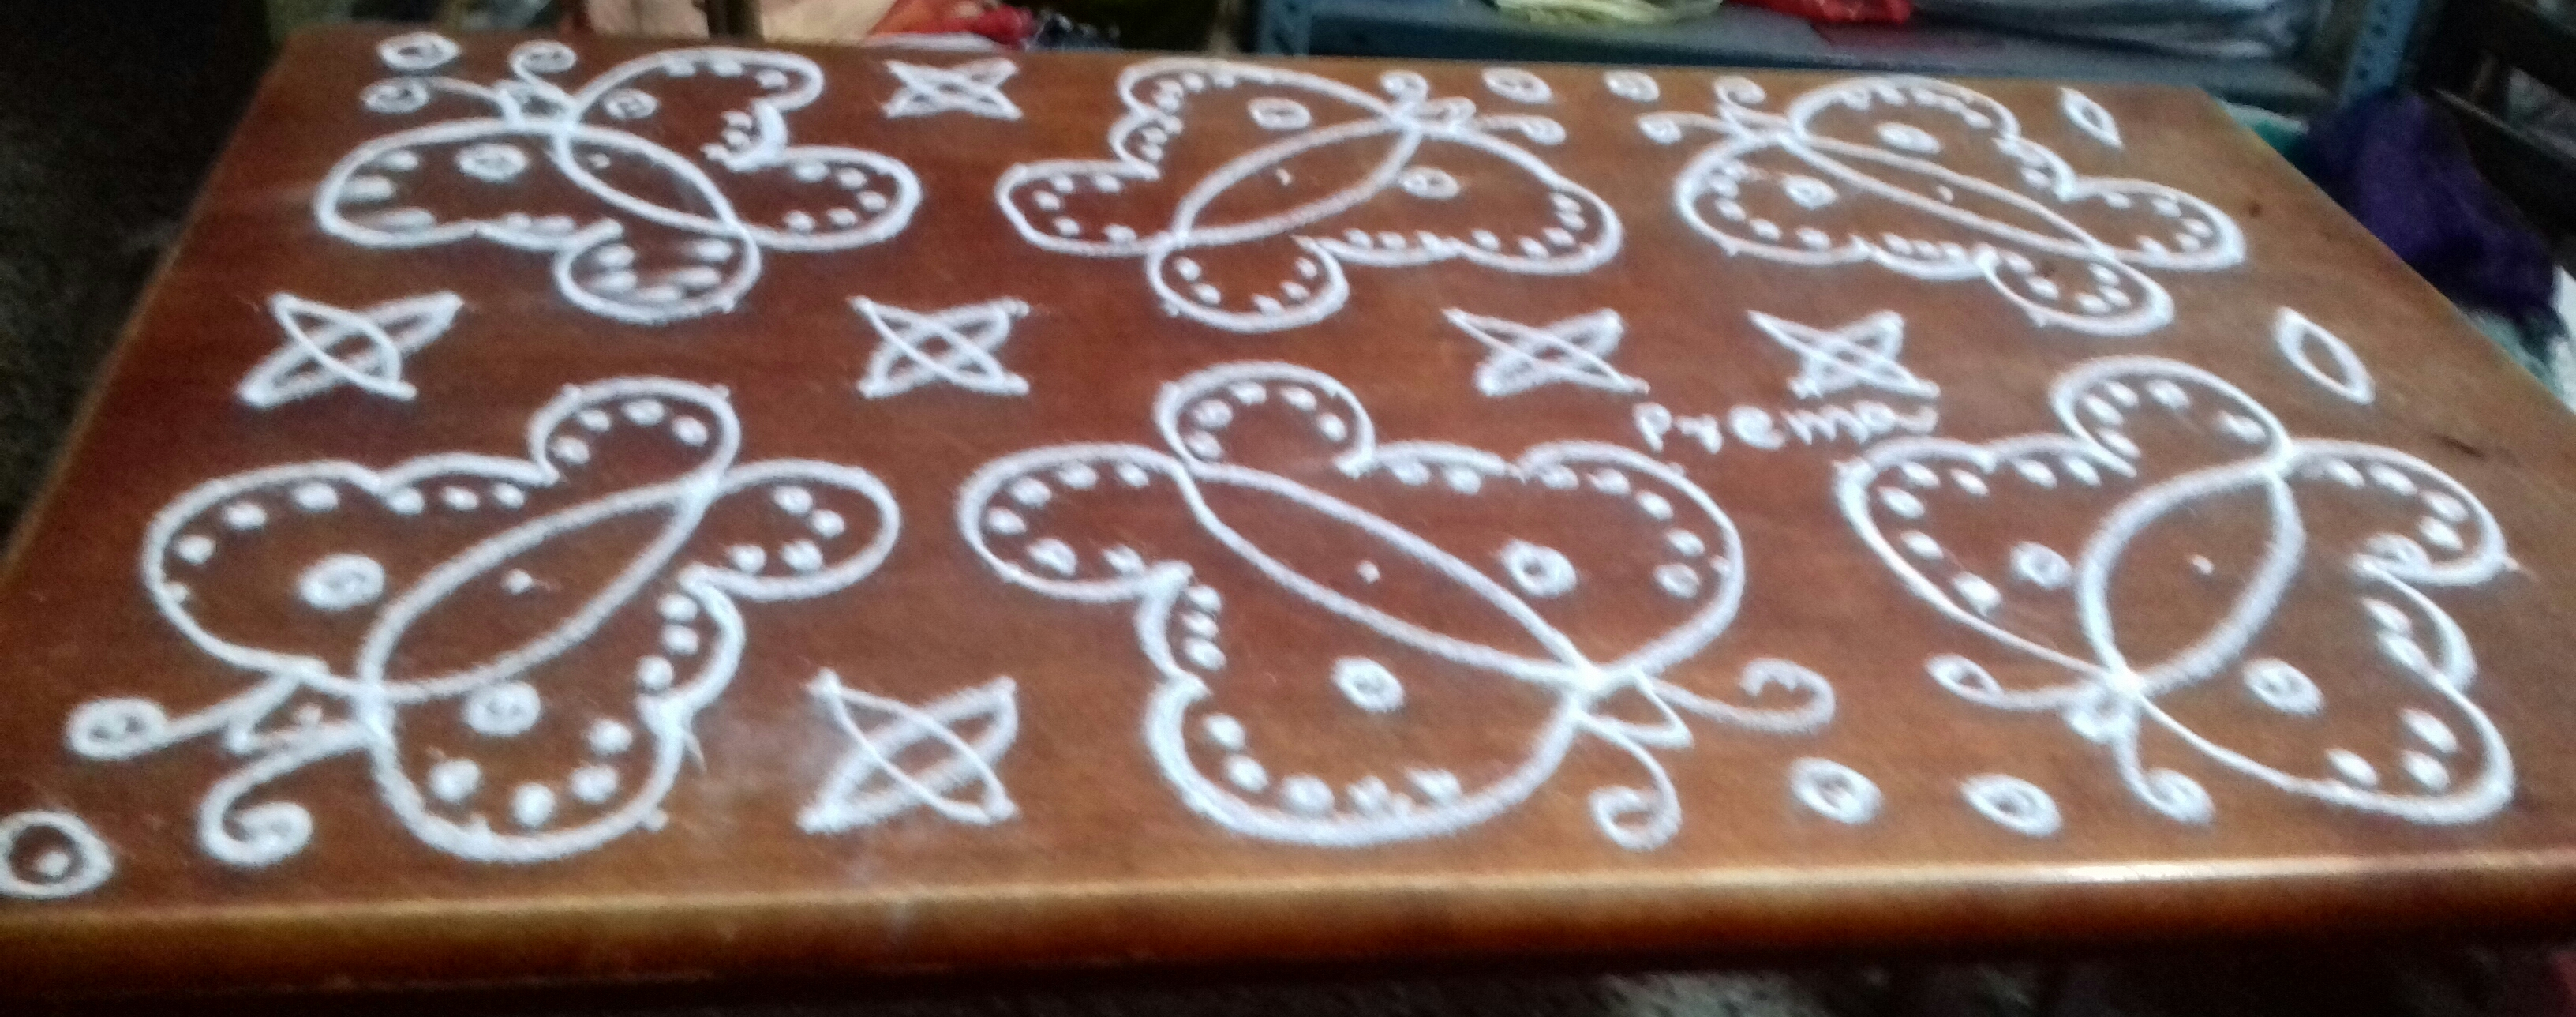 Butterfly kolam with 15 dots || Contest kolam